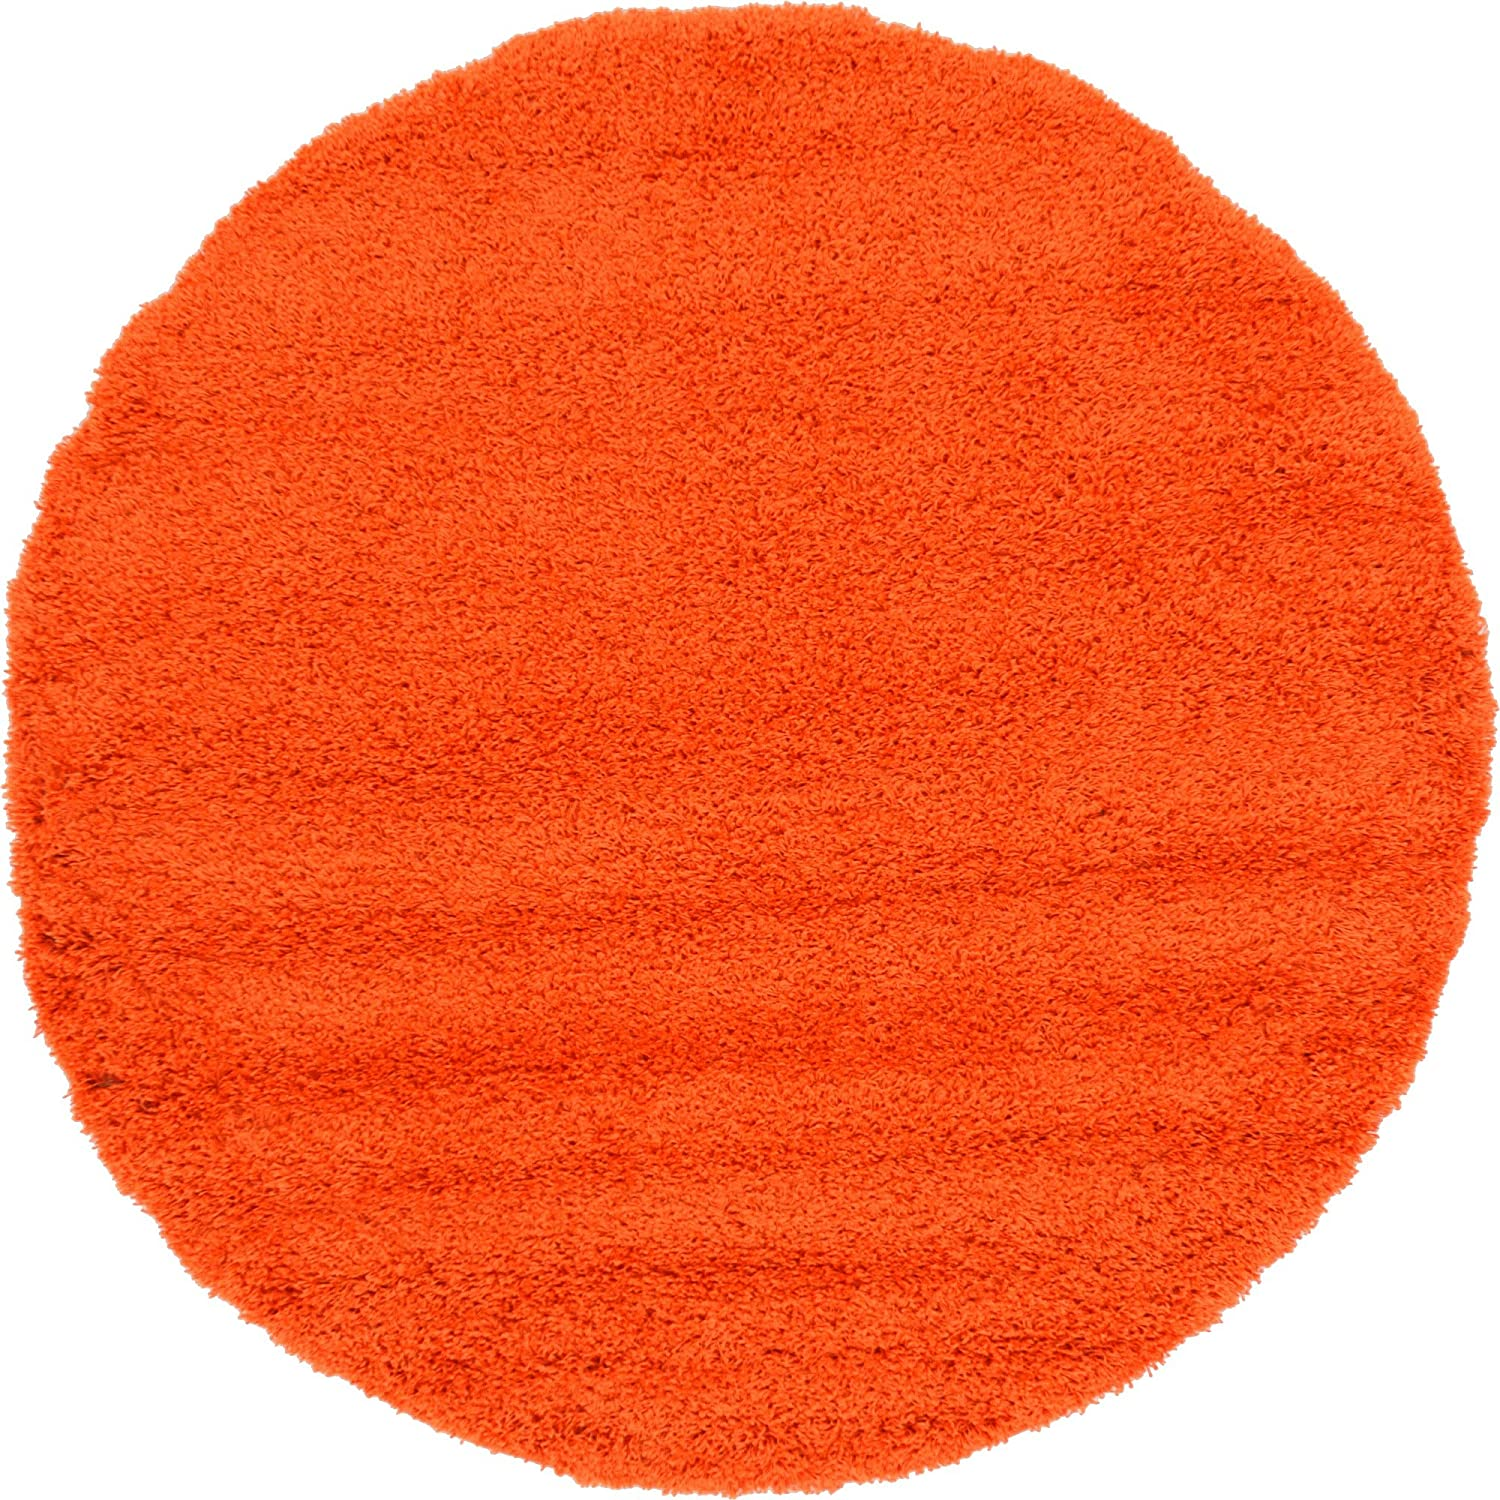 A2Z Rug Cozy Shaggy Collection 6-Feet Round Solid Area Rug - Tiger Orange